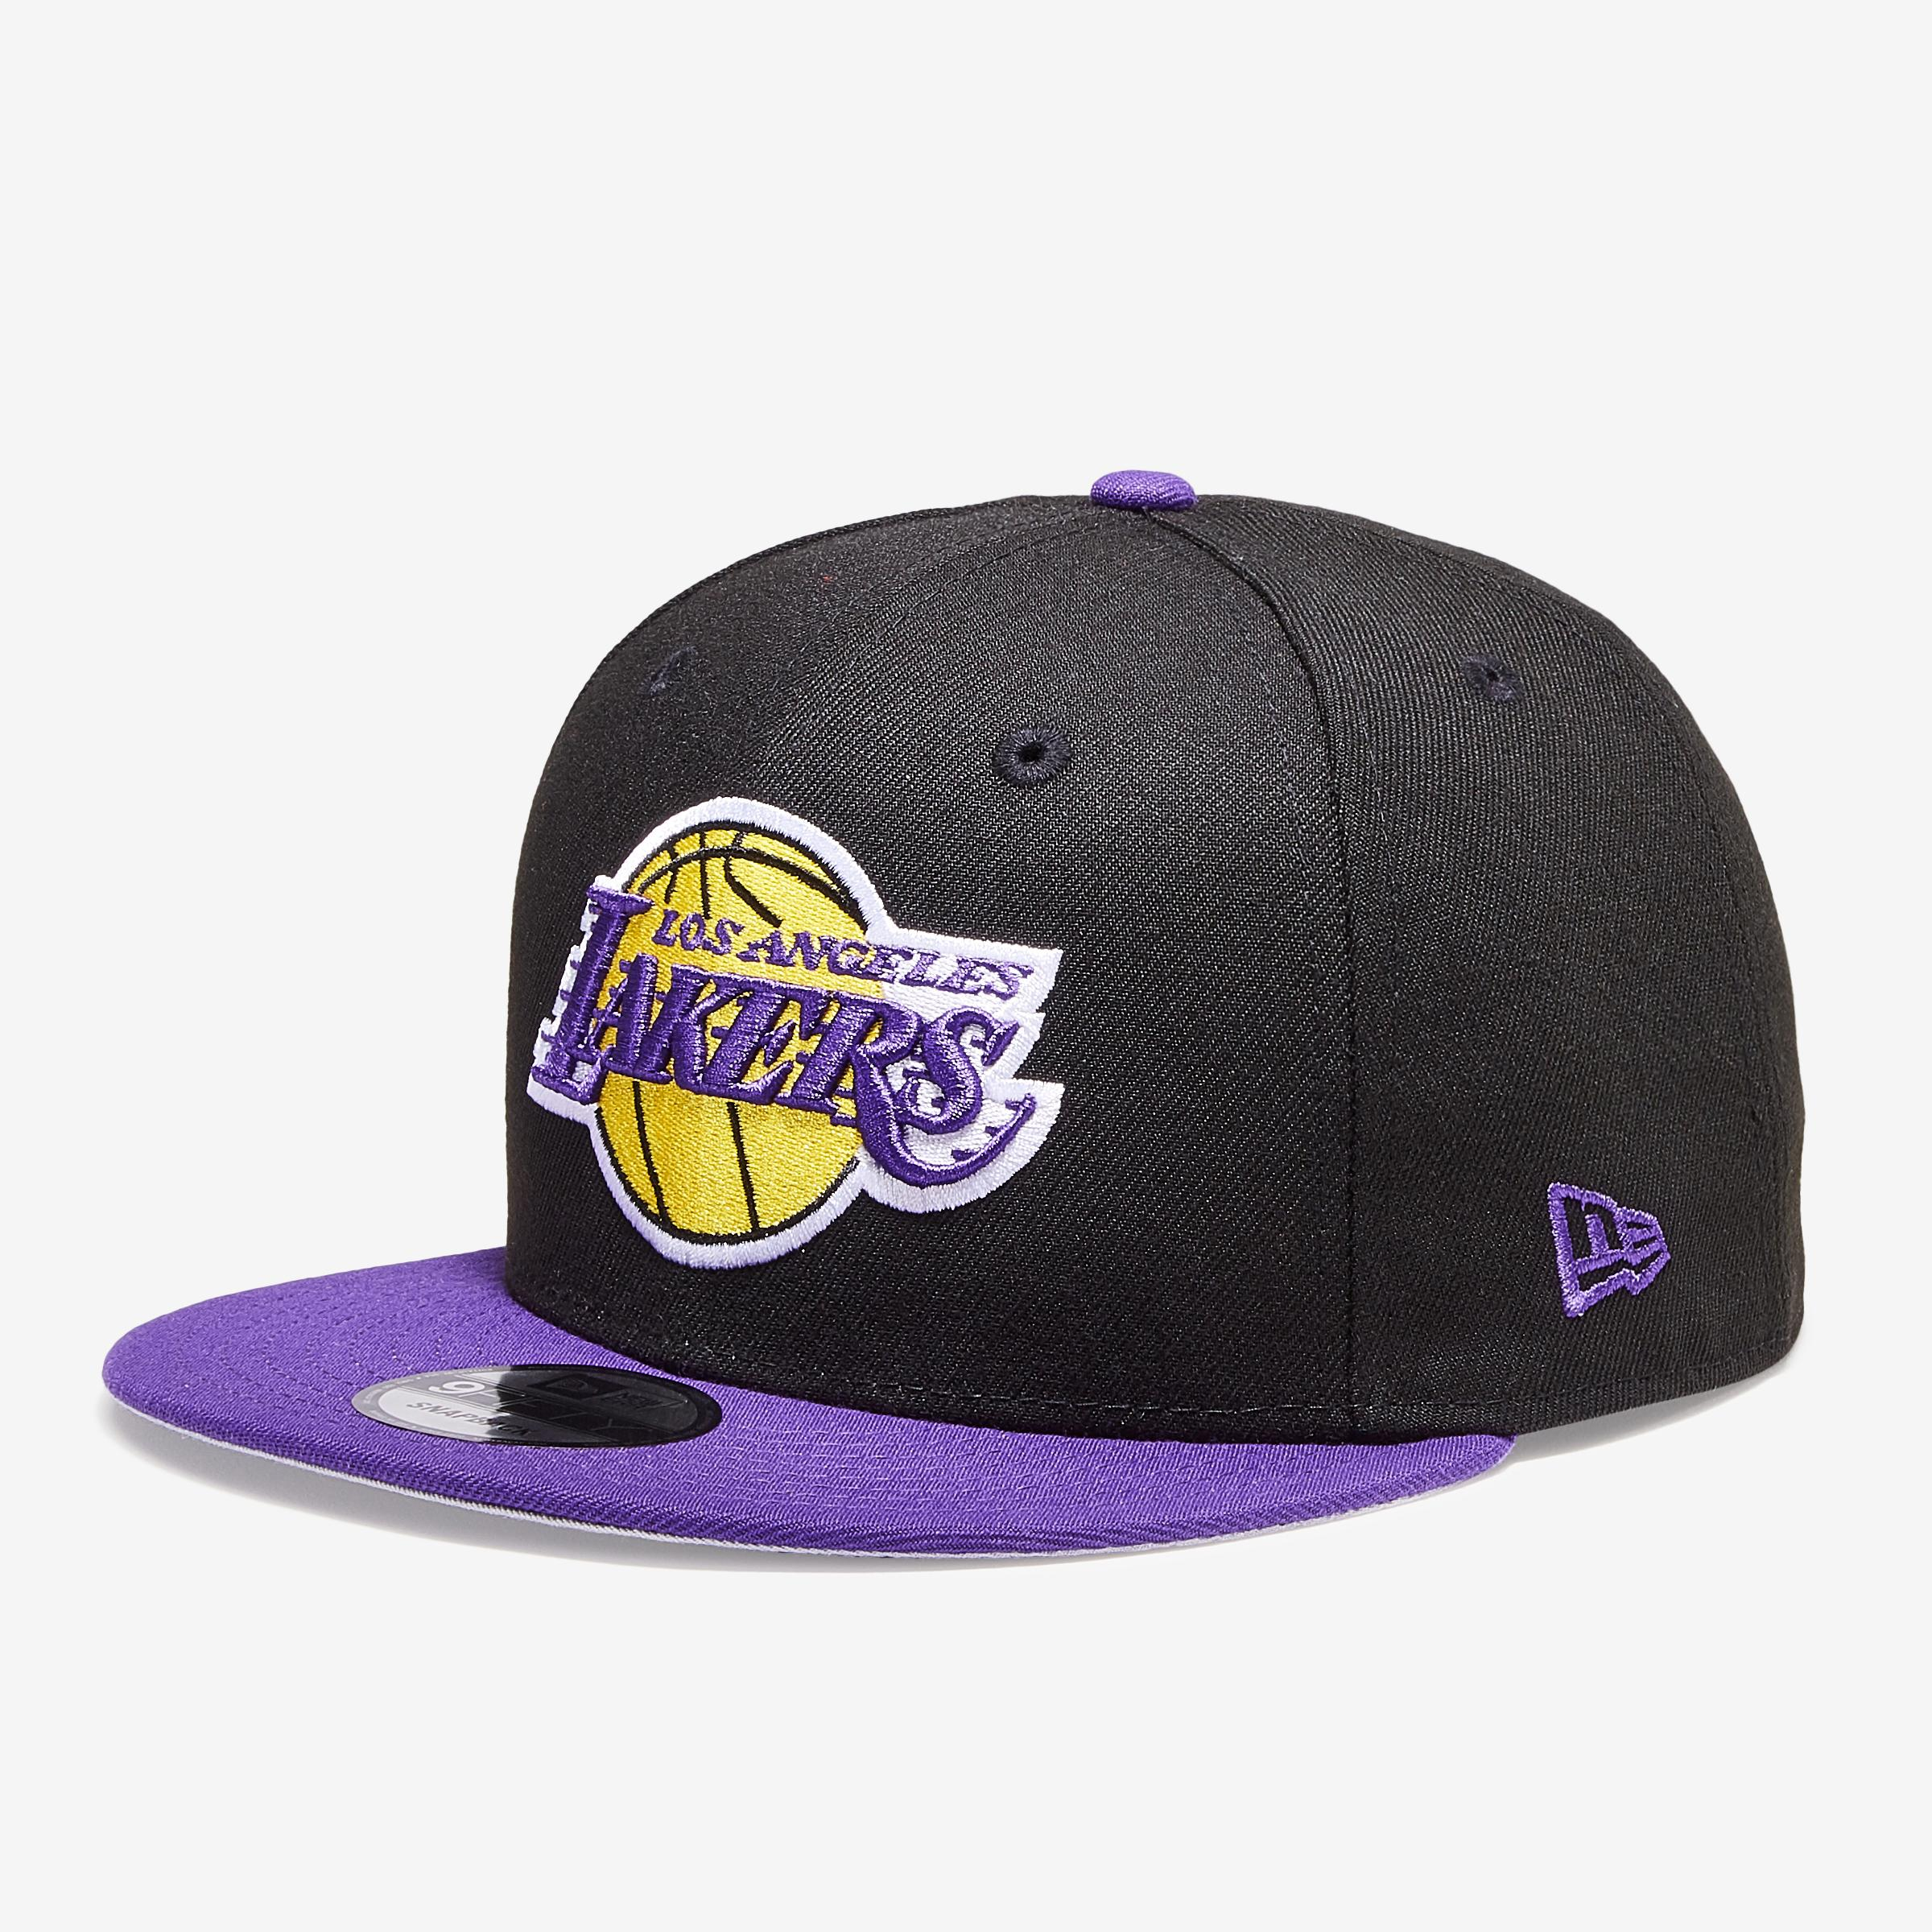 Lakers 9fifty Snapback